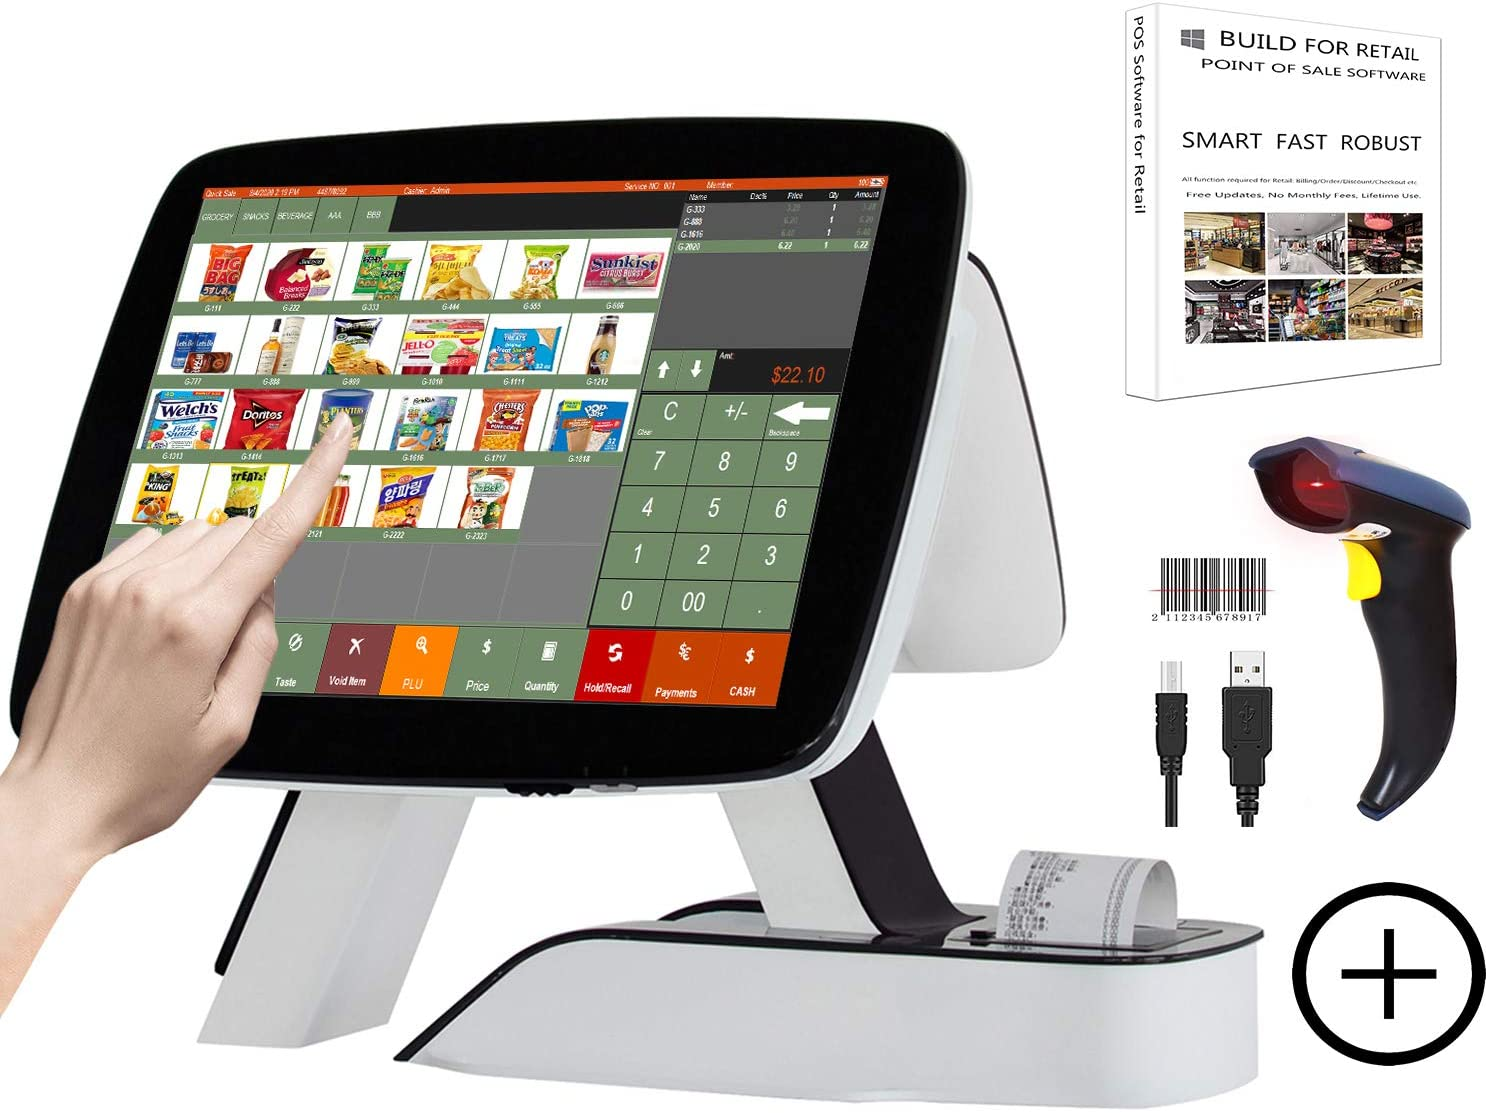 ZHONGJI All in One Point of Sale 15'' Touch Screen Cash Register with Customer Display Built-in 2 1/4'' 58MM Thermal Printer Software for Retail Stores POS System